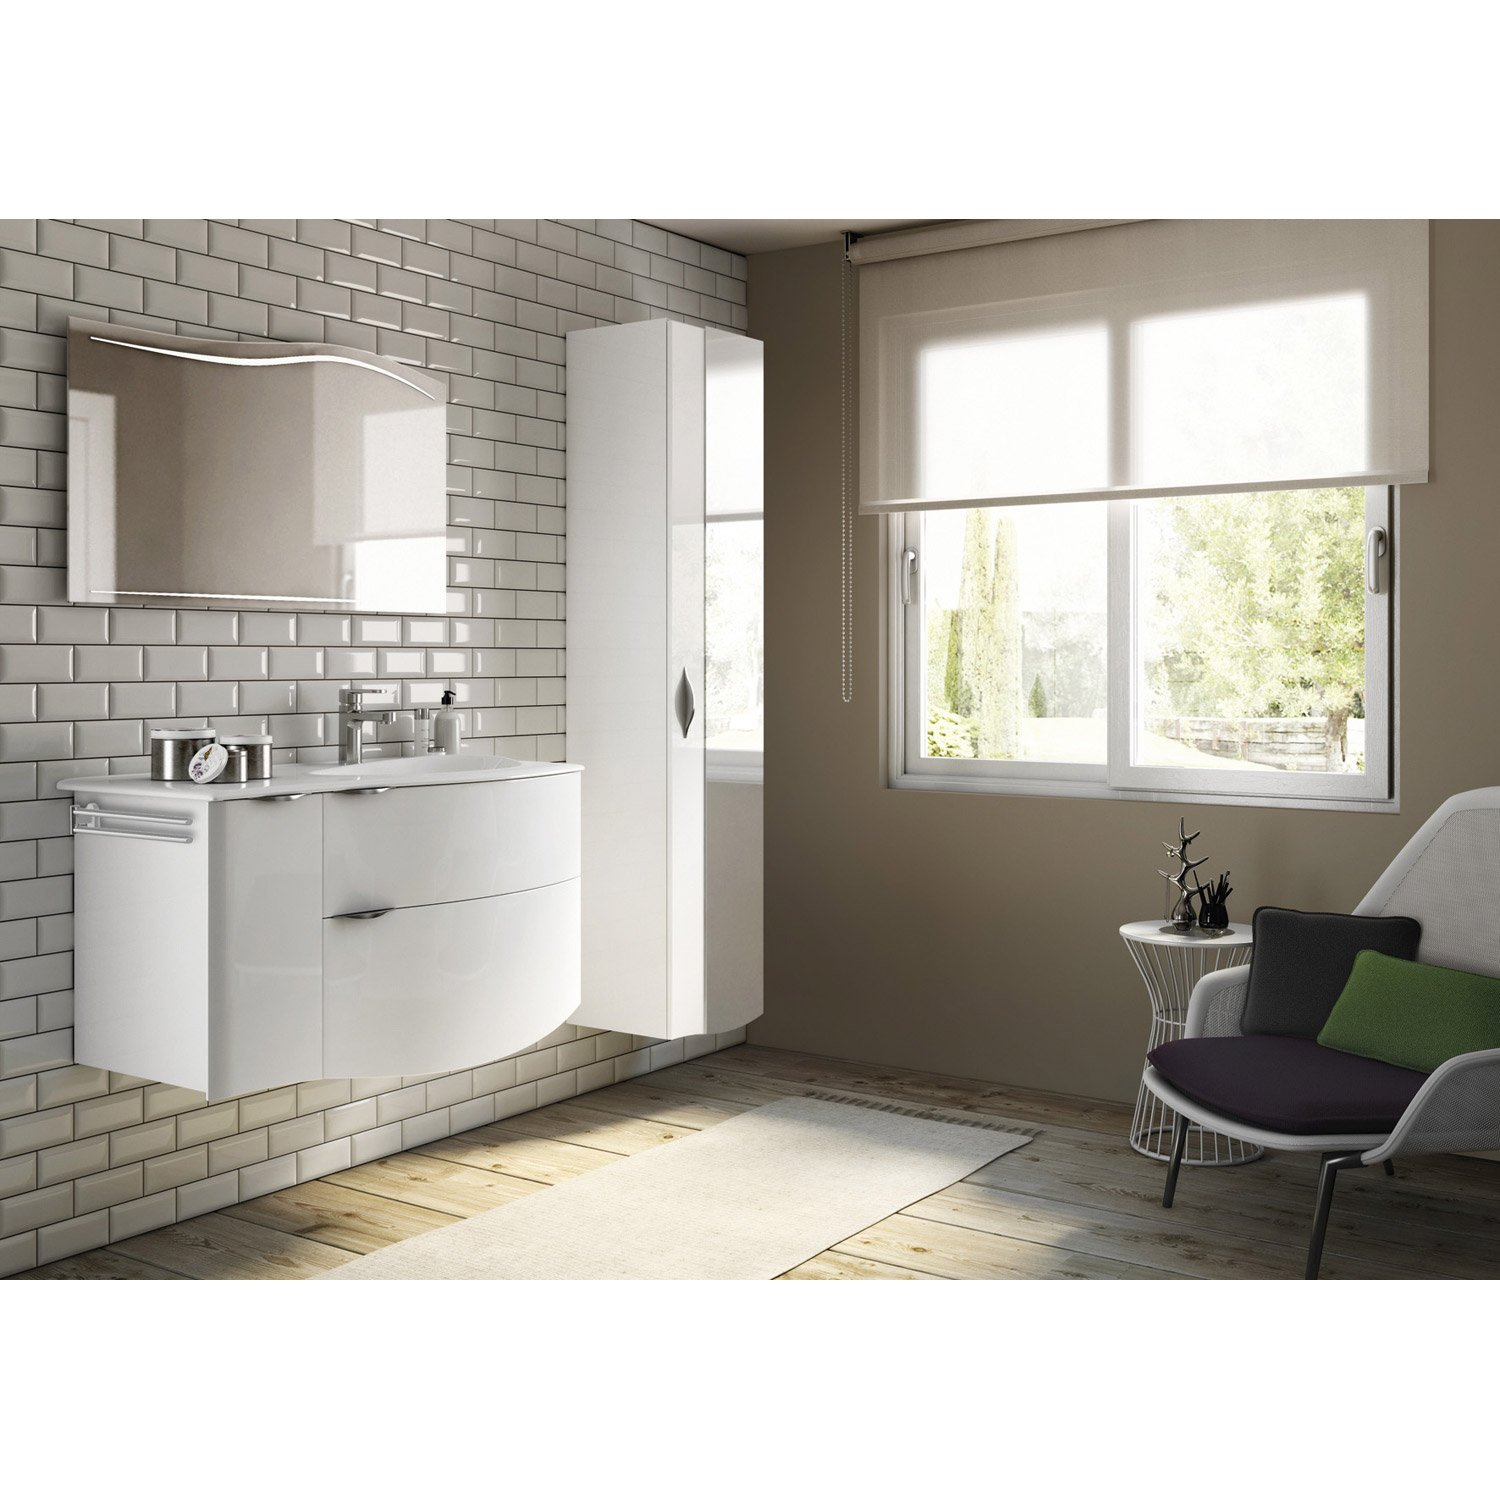 Renovation Salle De Bain Leroy Merlin  Bright Shadow Online